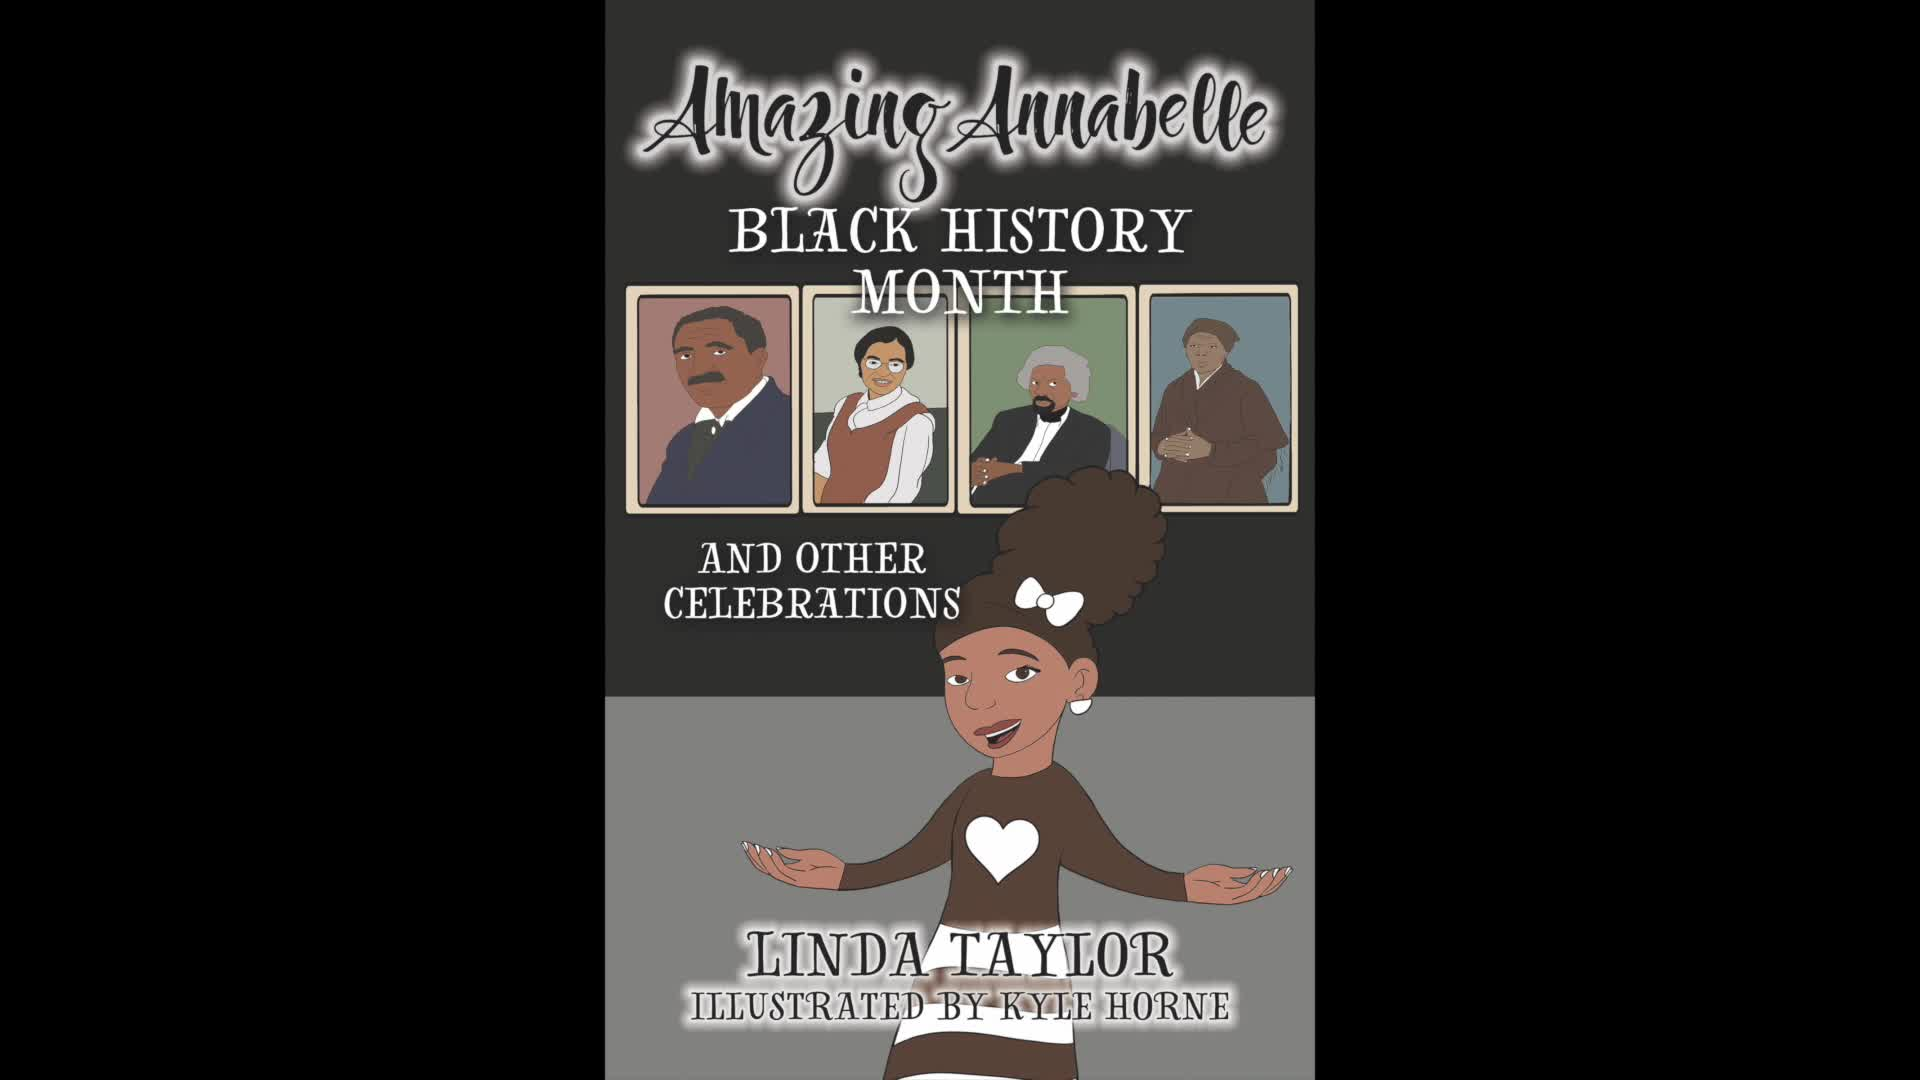 Amazing Annabelle Black History Month Chapter 10